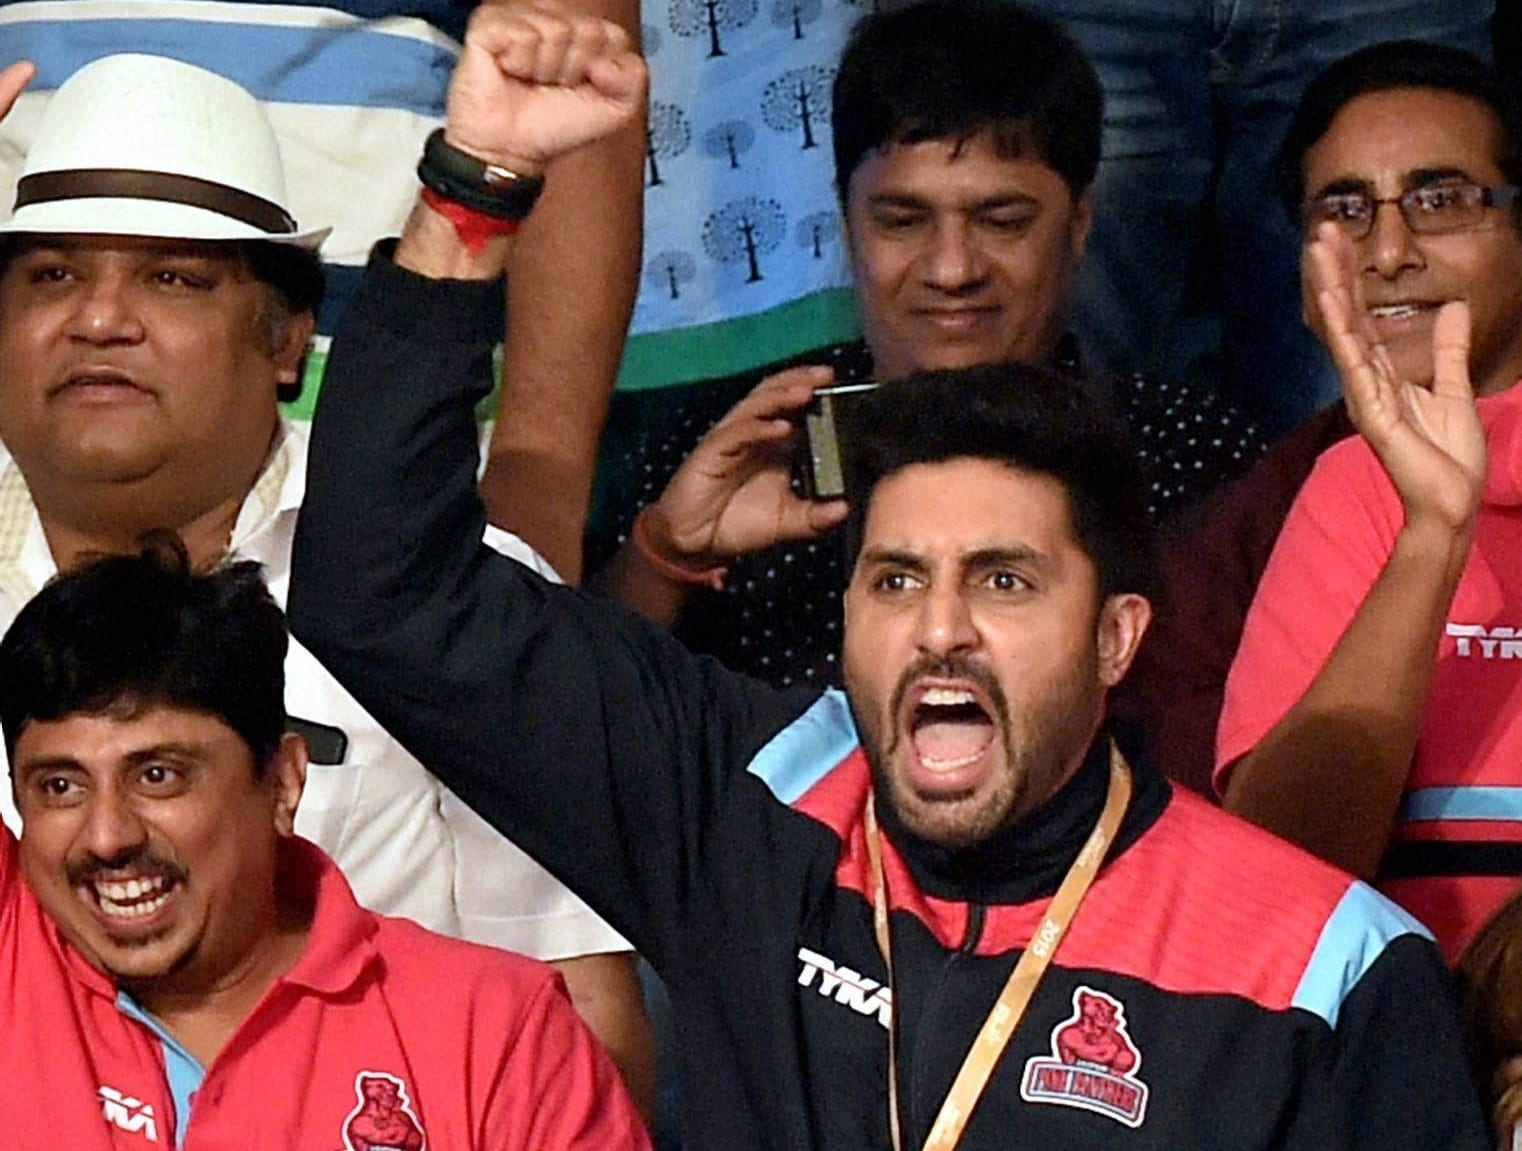 Abhishek Bachchan, Dabang Delhi, Jaipur Pink Panther, Pro Kabaddi League, Pro Kabaddi, Kabaddi, Kabaddi League, Sports Pro Kabaddi, Sports News, New Delhi